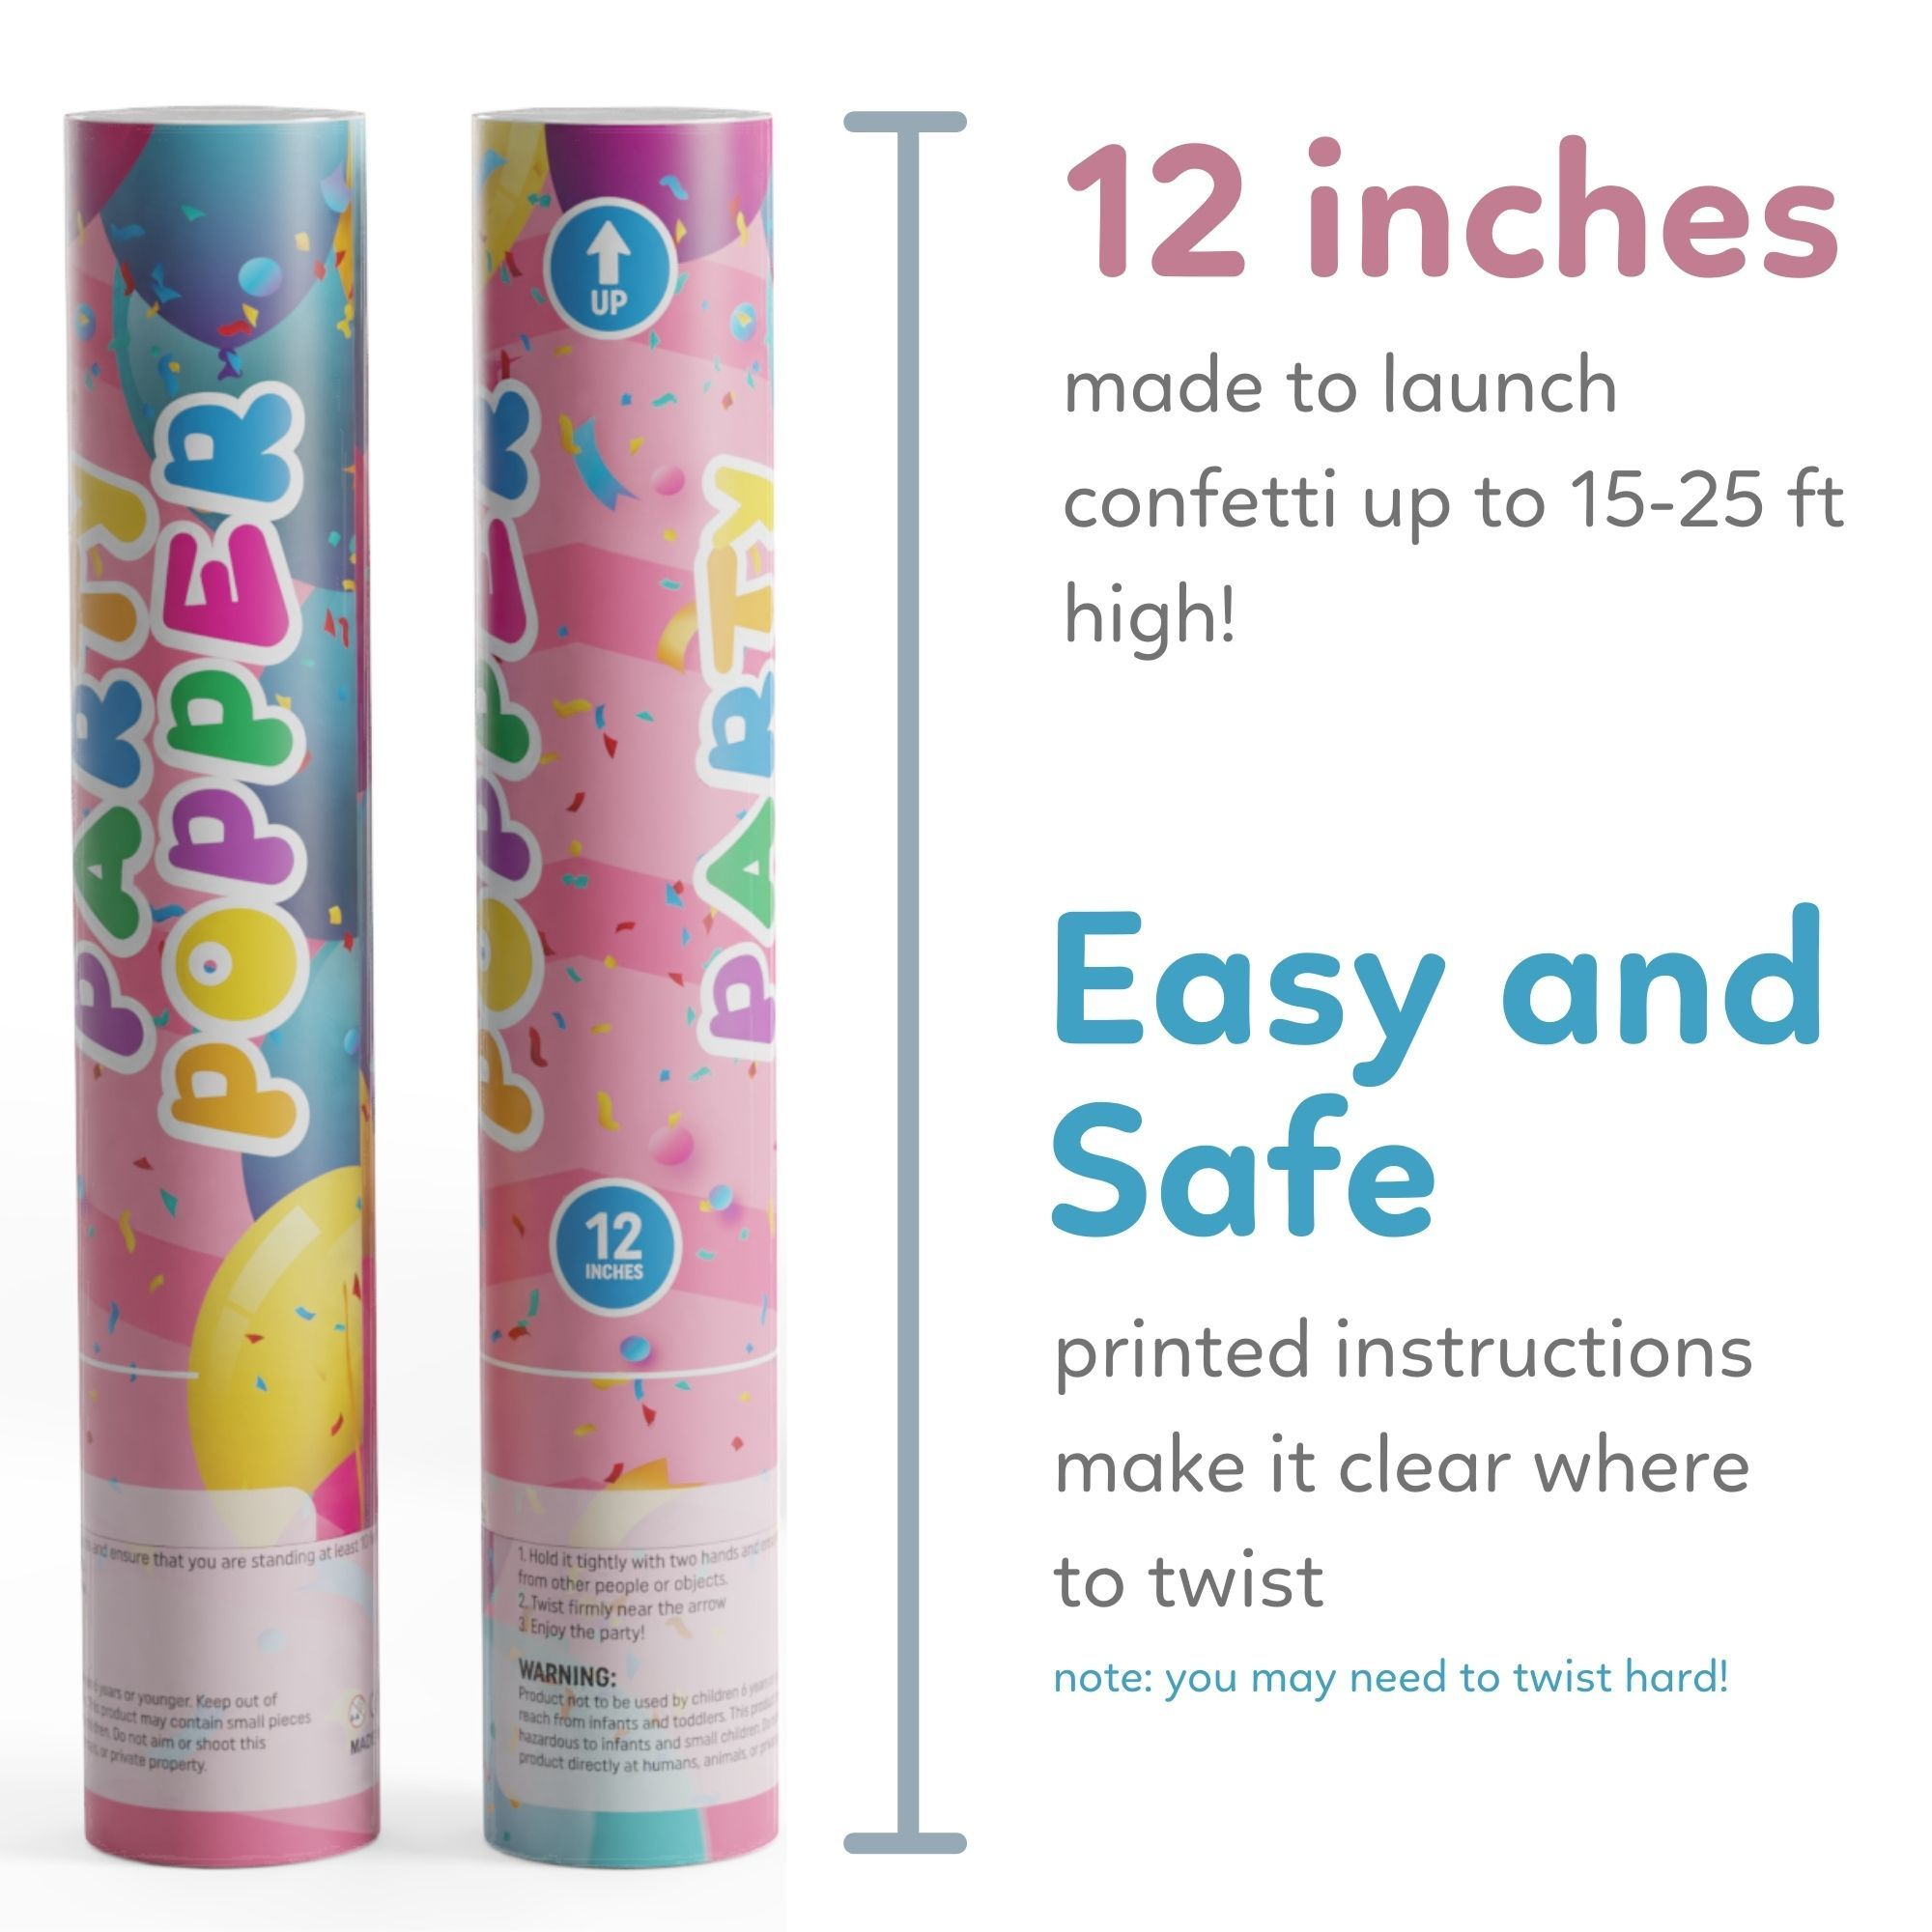 12 inch easy to use confetti cannons